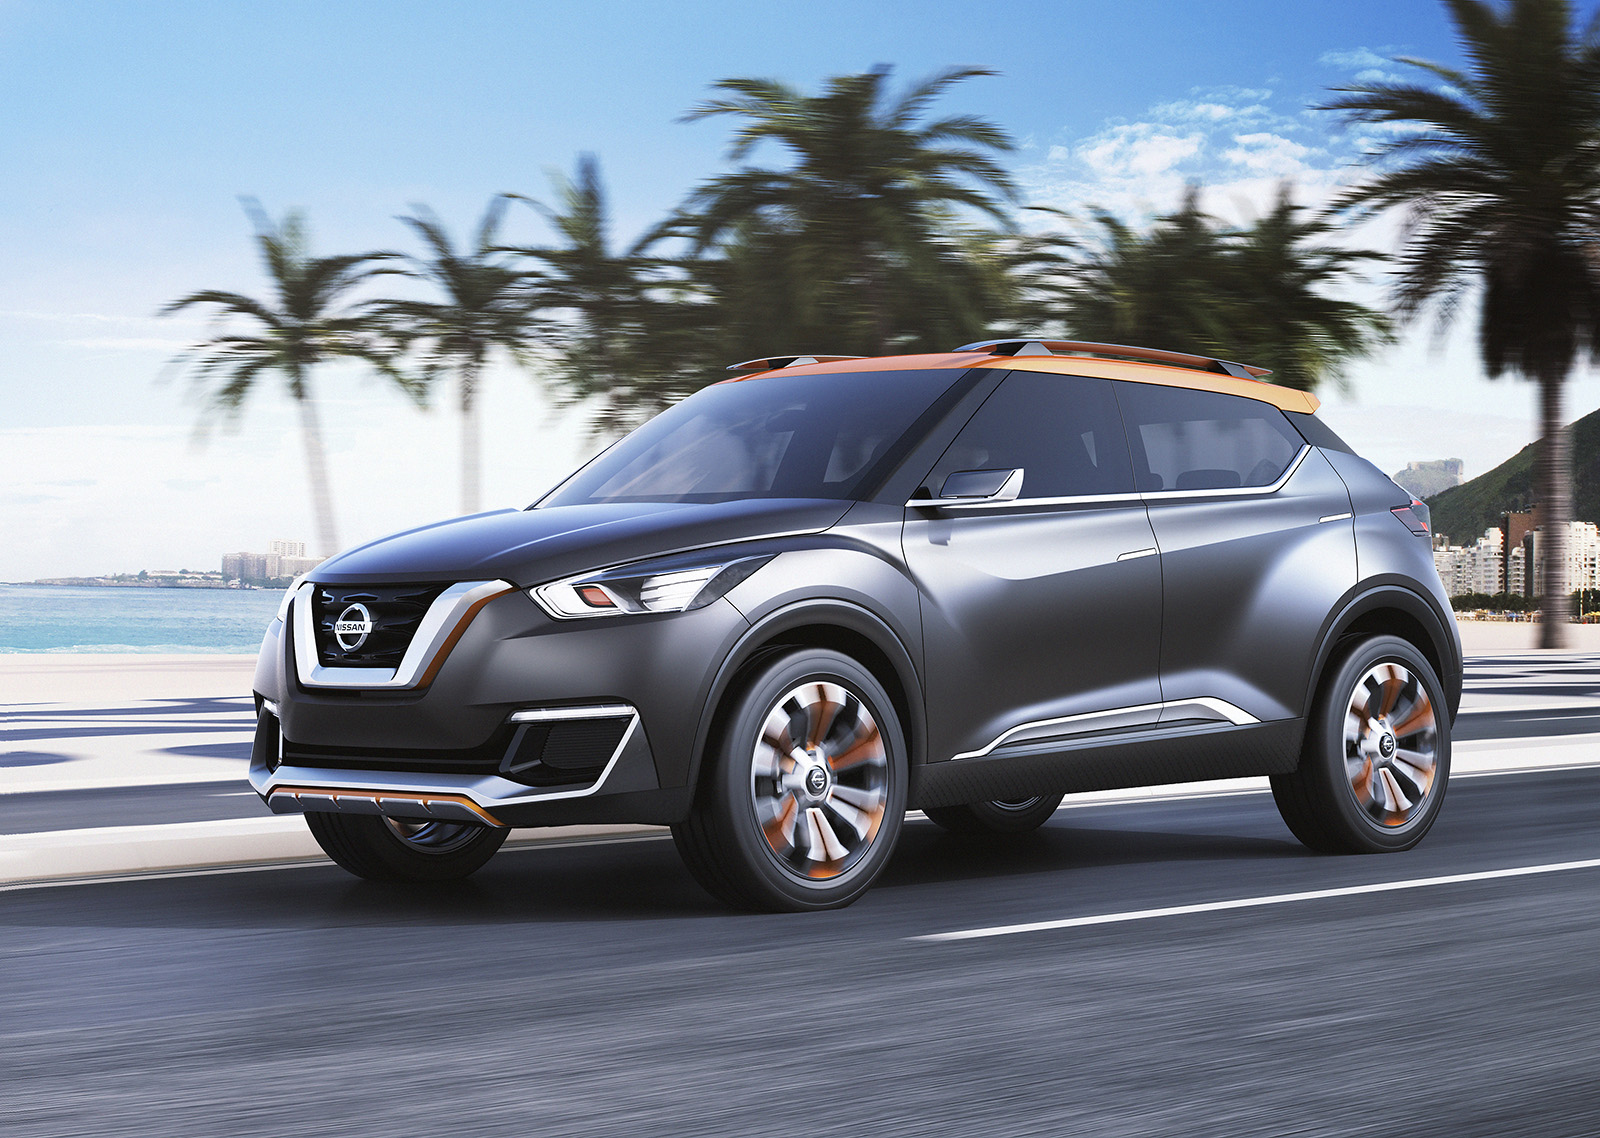 Nissan Kicks Suv To Debut In 2016 As The Official Car Of 2017 Murano Crosscabriolet